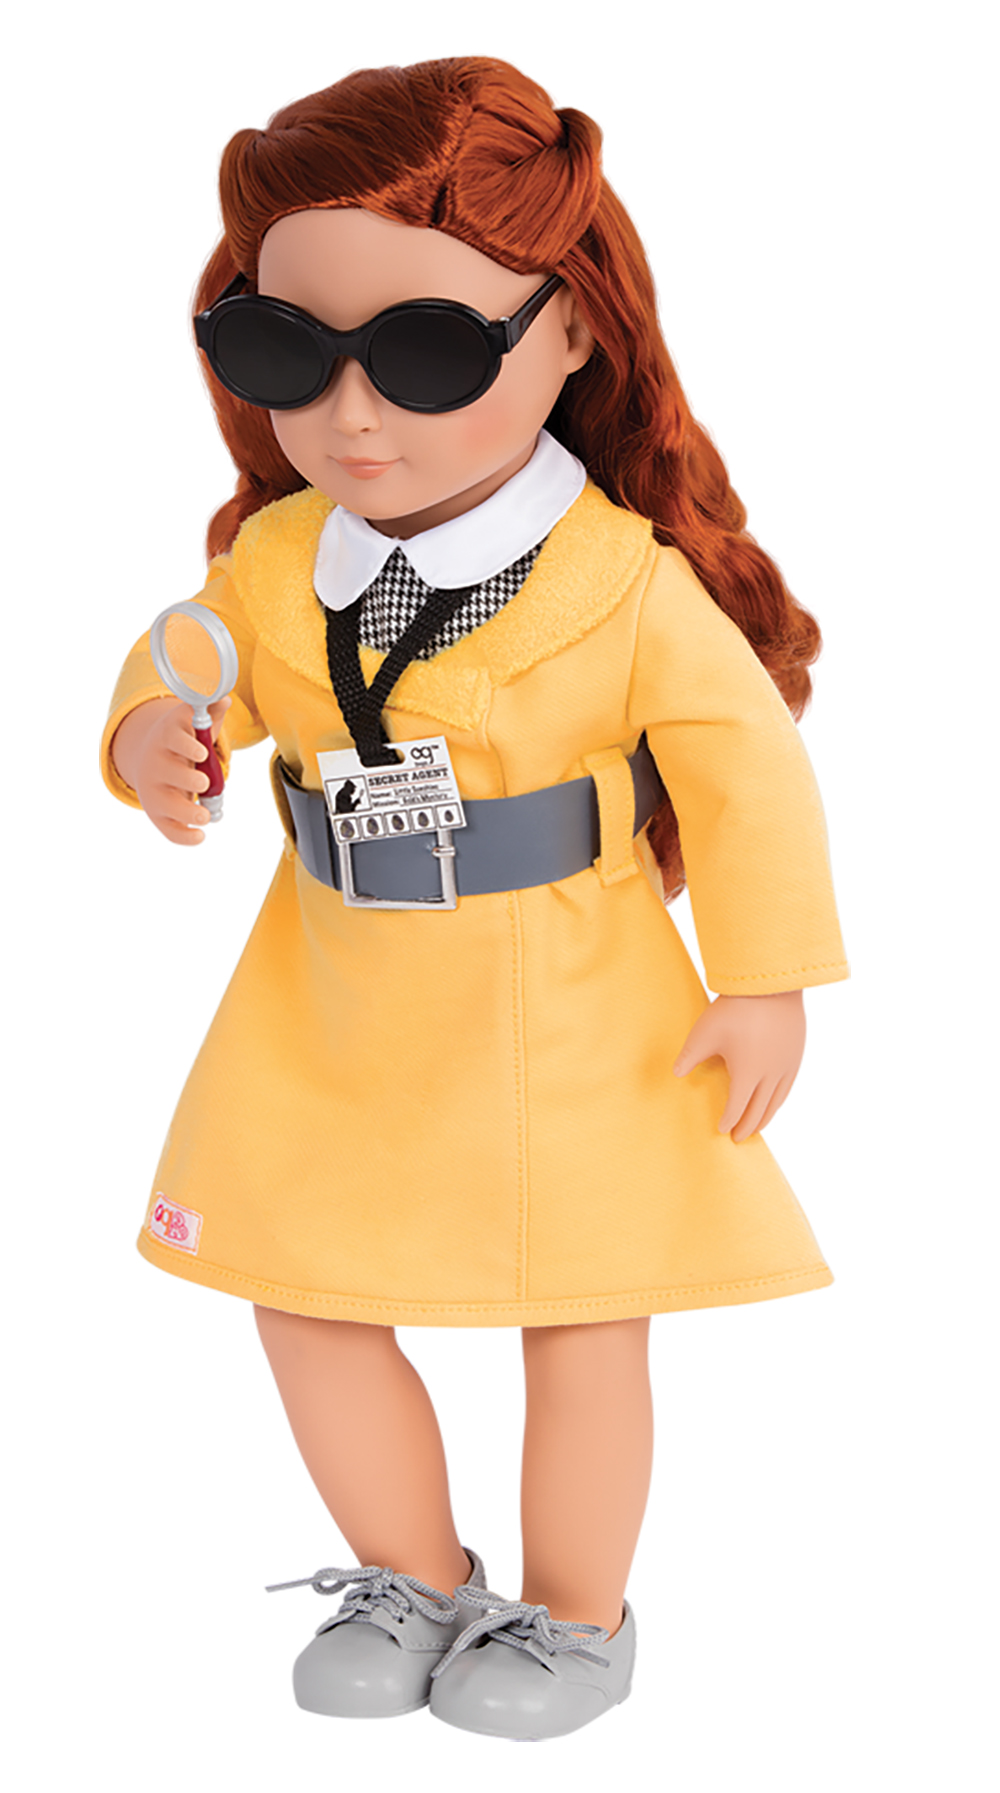 Deluxe Retro Outfit OG - Secret Agent Style for 18 Doll